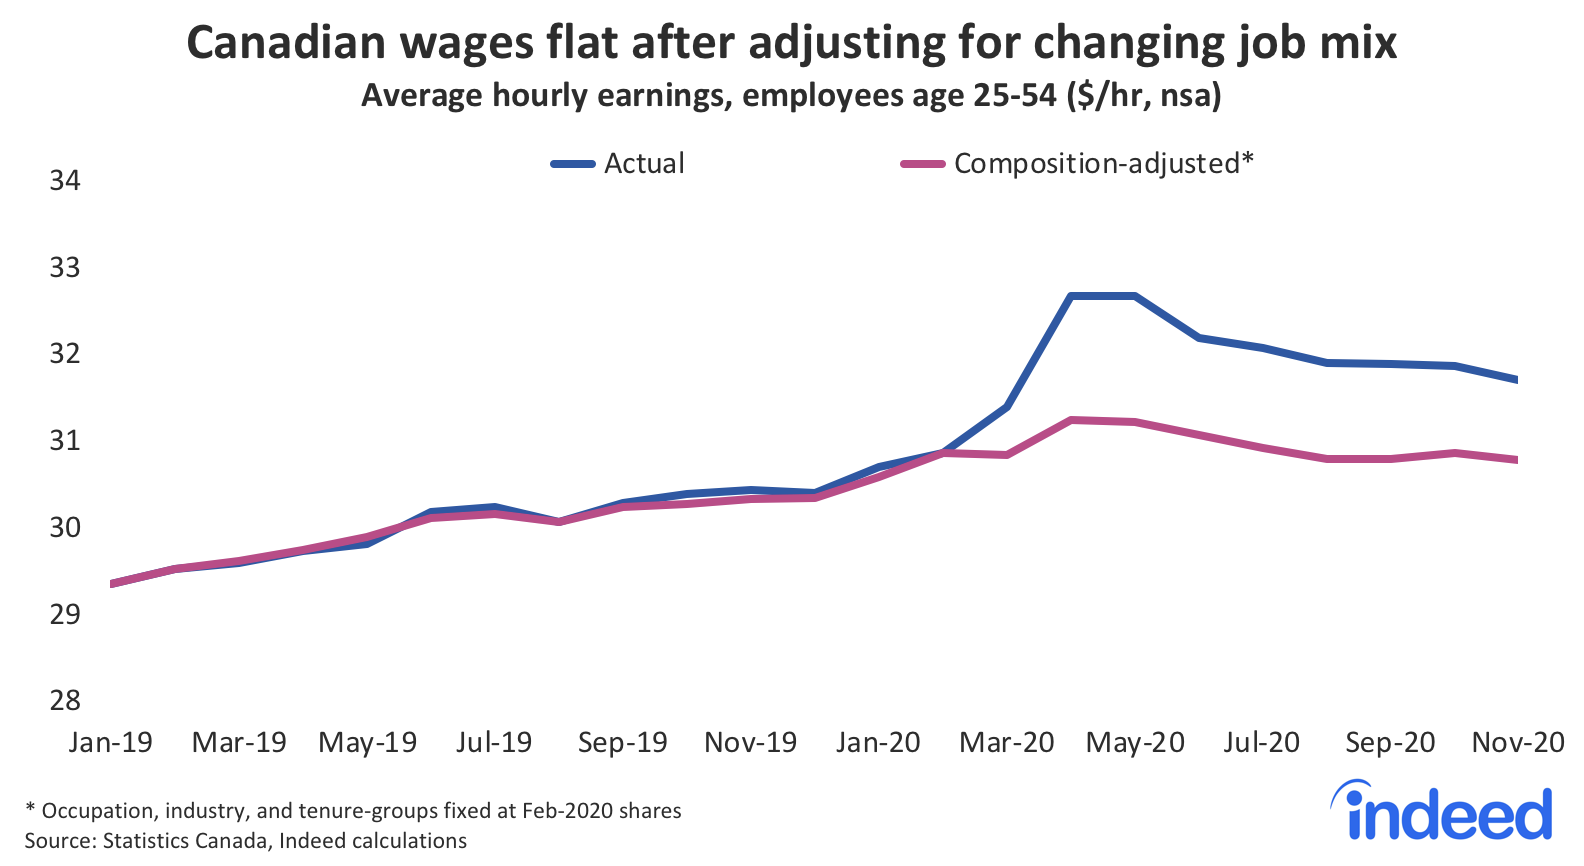 Line graph showing Canadian wages flat after adjusting for changing job mix